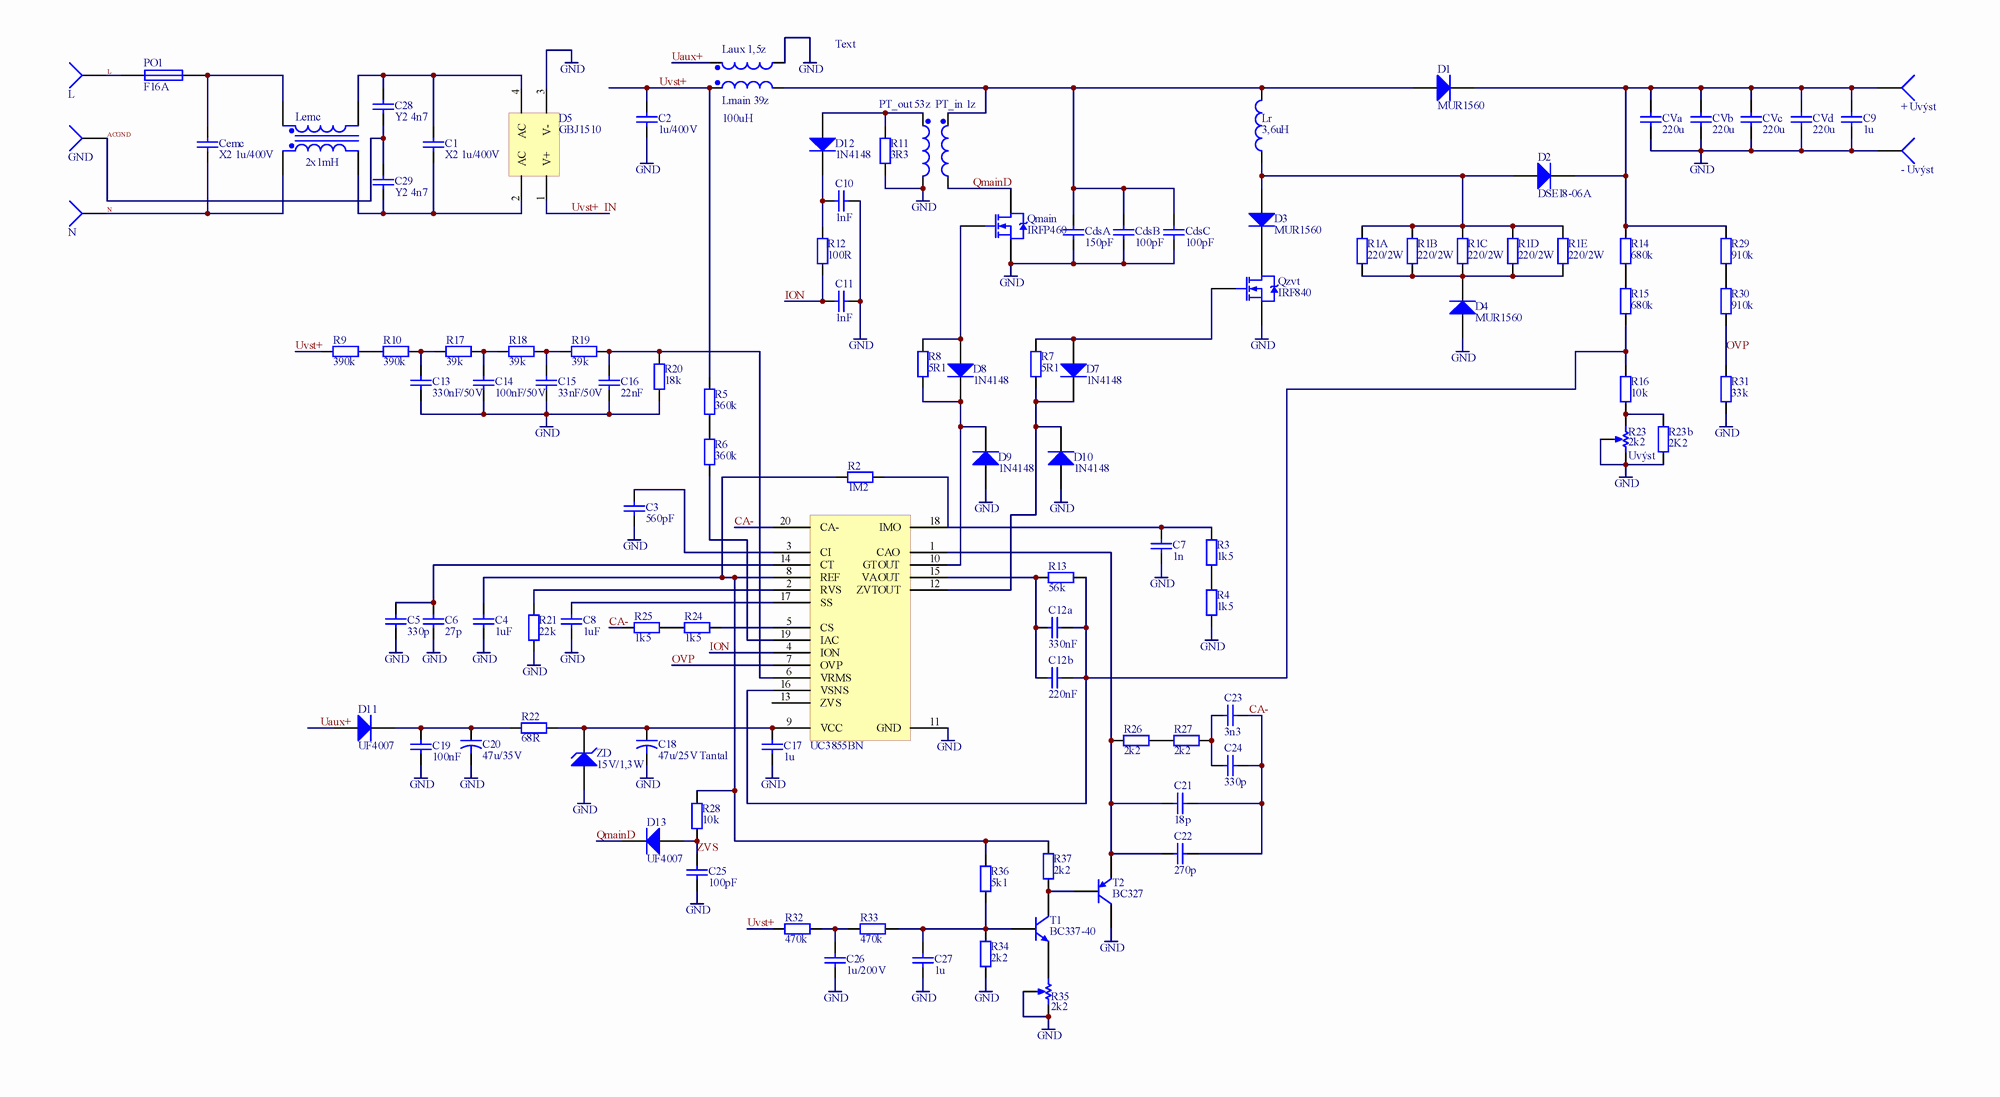 1000w Pfc Circuit Uc3855 Electronics Projects Circuits Smps Buck Converter Using 34063 Ic Electronic Diagrams Displacement Quasi Resonant Boost 120x120